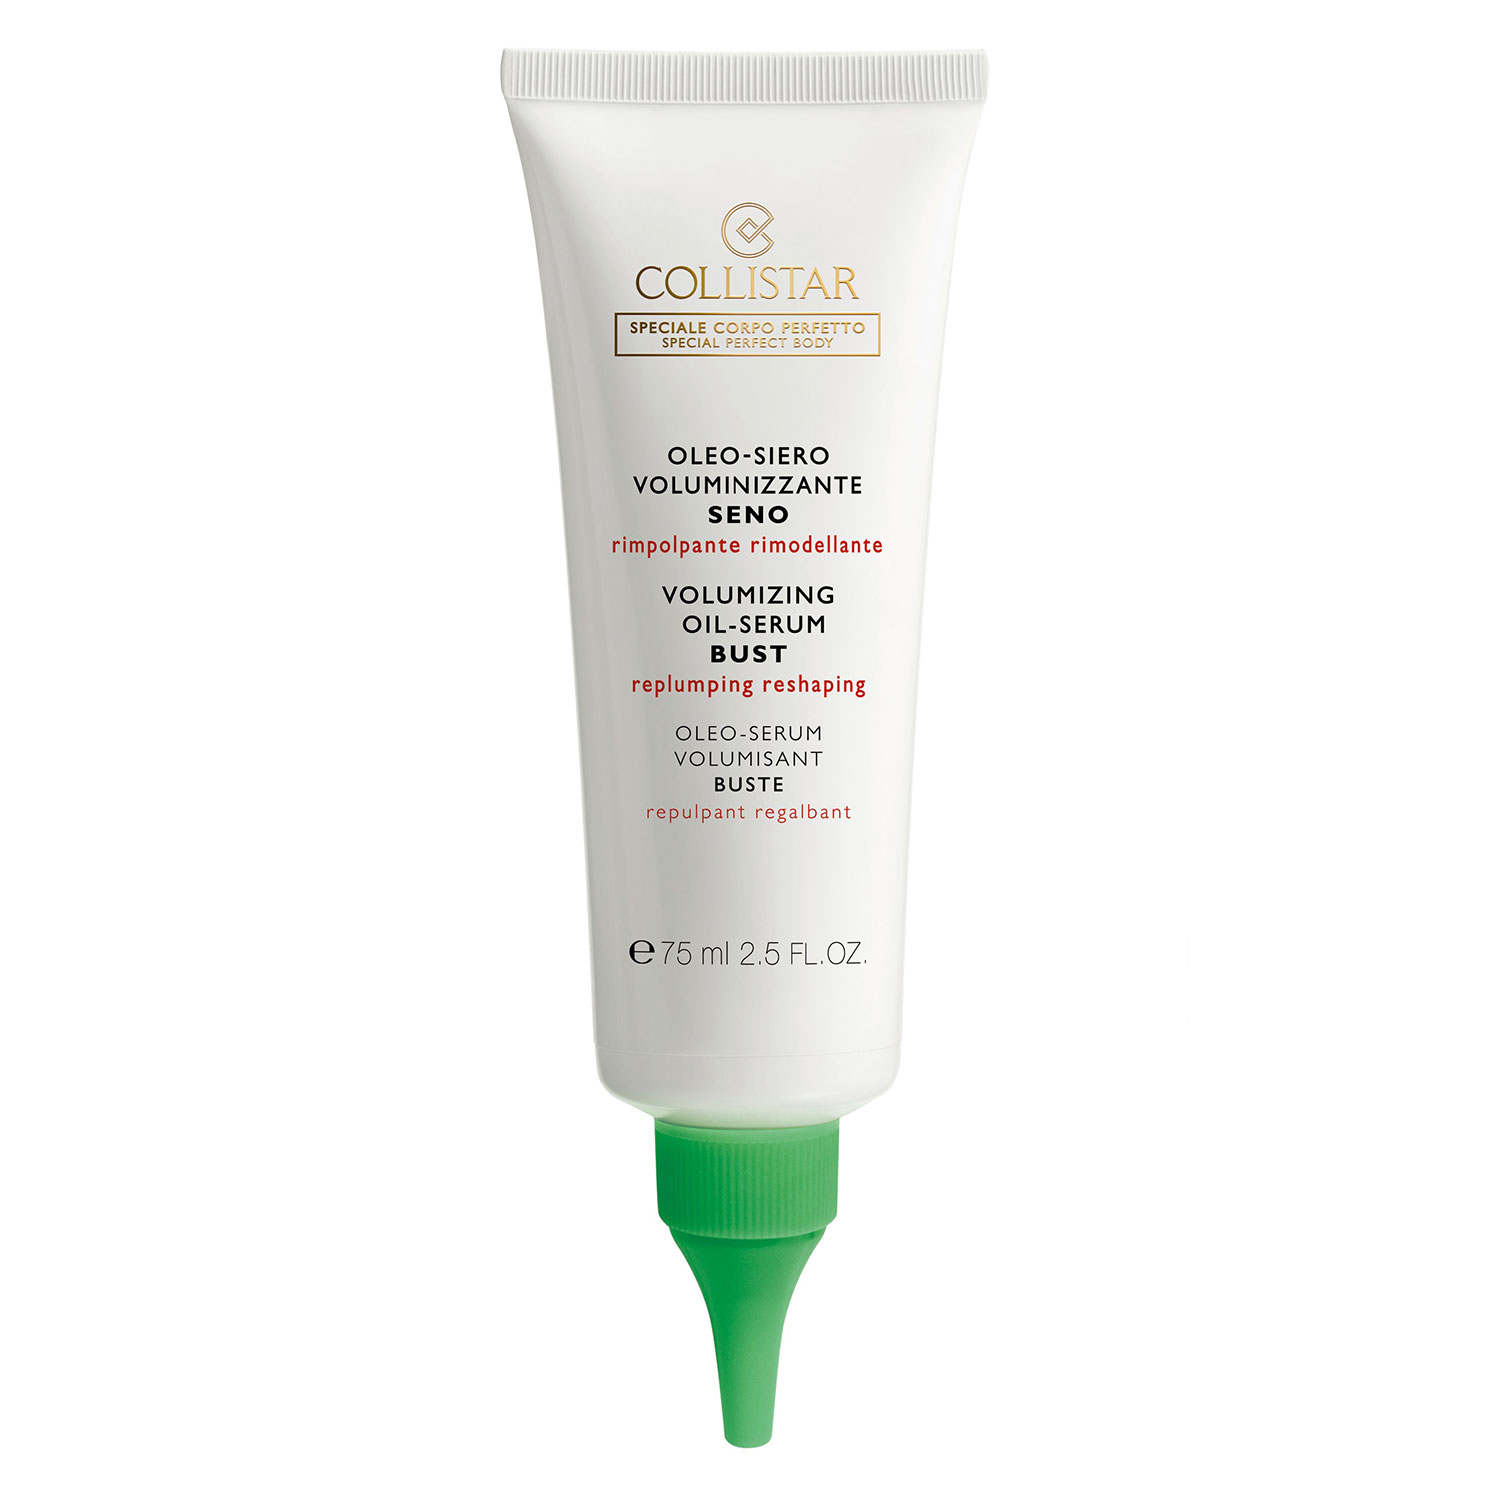 CS Body - Voluminizing Oil-Serum Bust